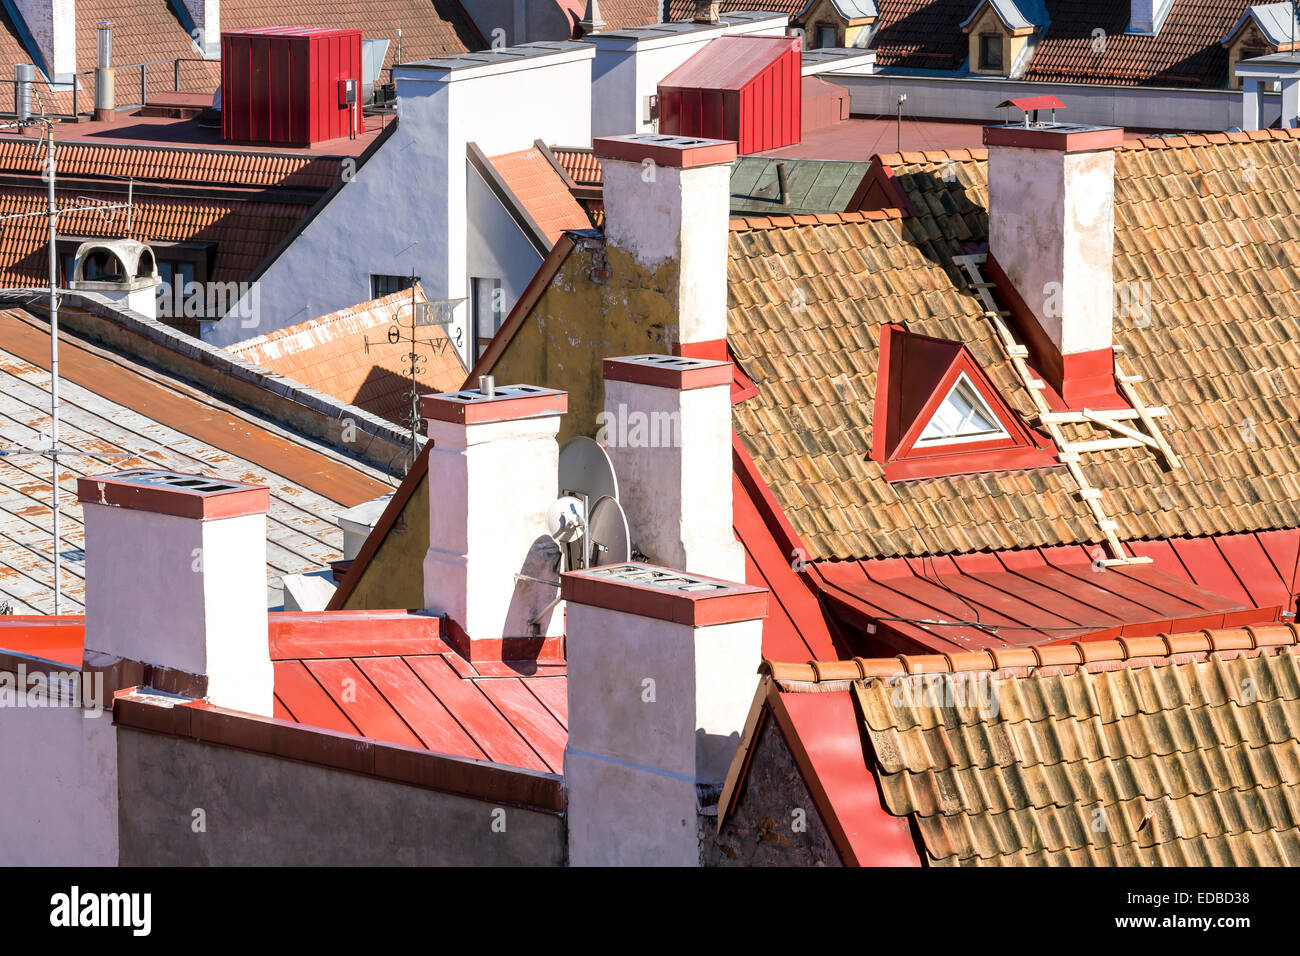 View on the roofs of the old town, Tallinn, Estonia - Stock Image